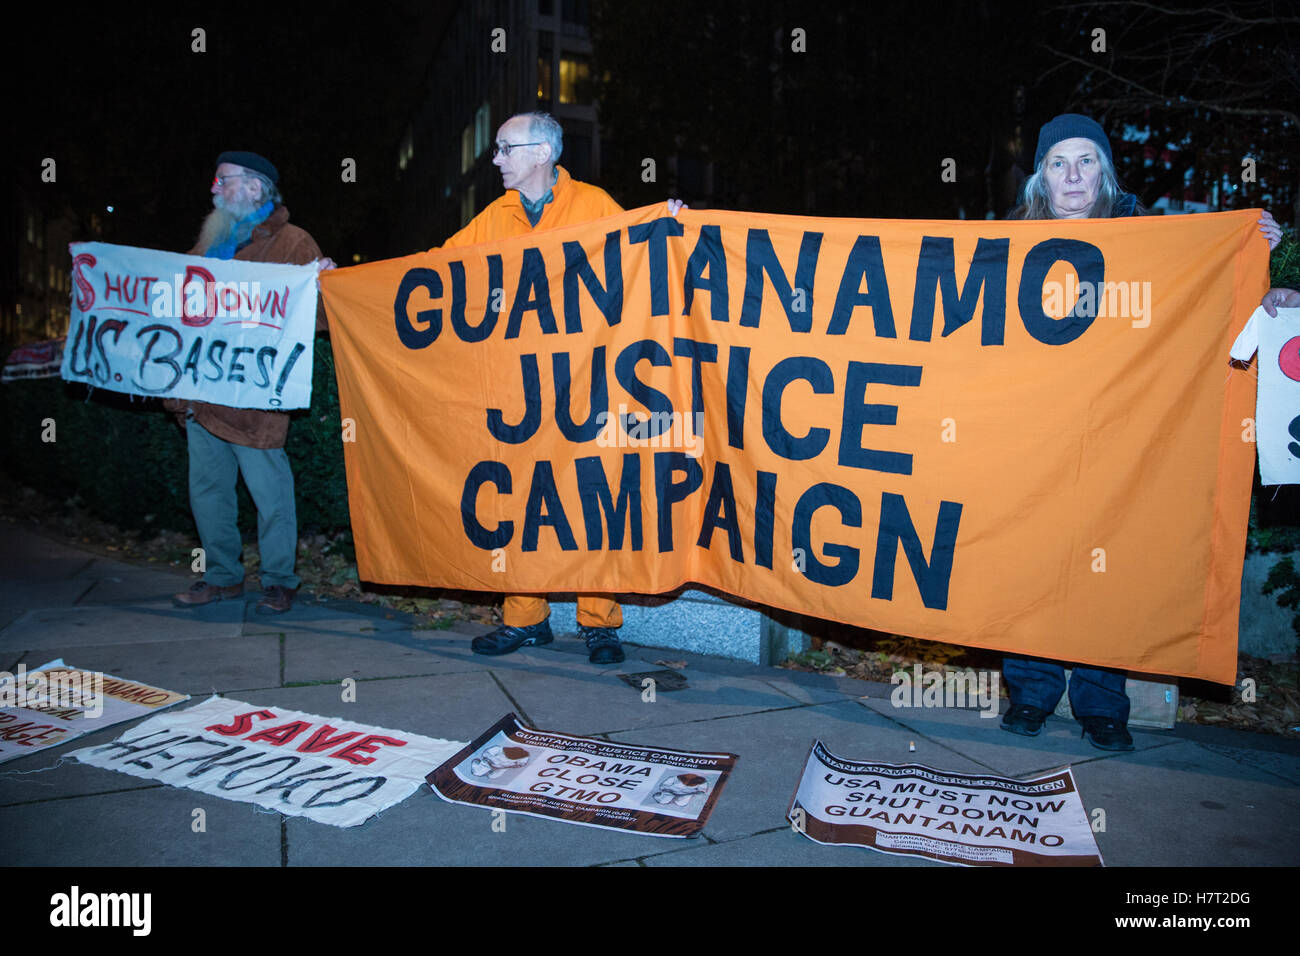 London, UK. 8th November, 2016. Activists from the London Guantanamo Campaign protest outside the US embassy following - Stock Image